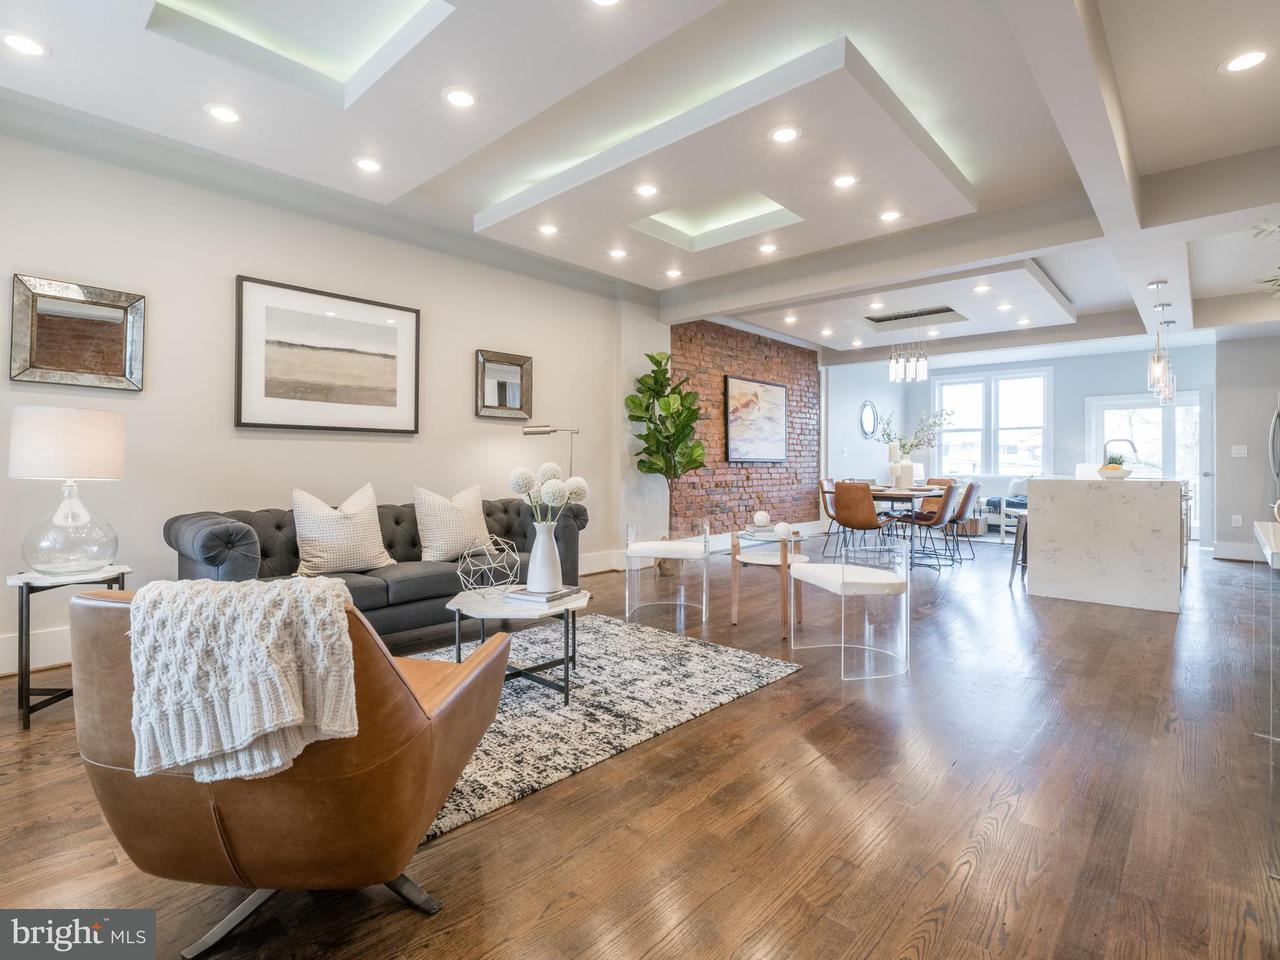 Single Family Home for Sale at 435 Emerson St Nw 435 Emerson St Nw Washington, District Of Columbia 20011 United States